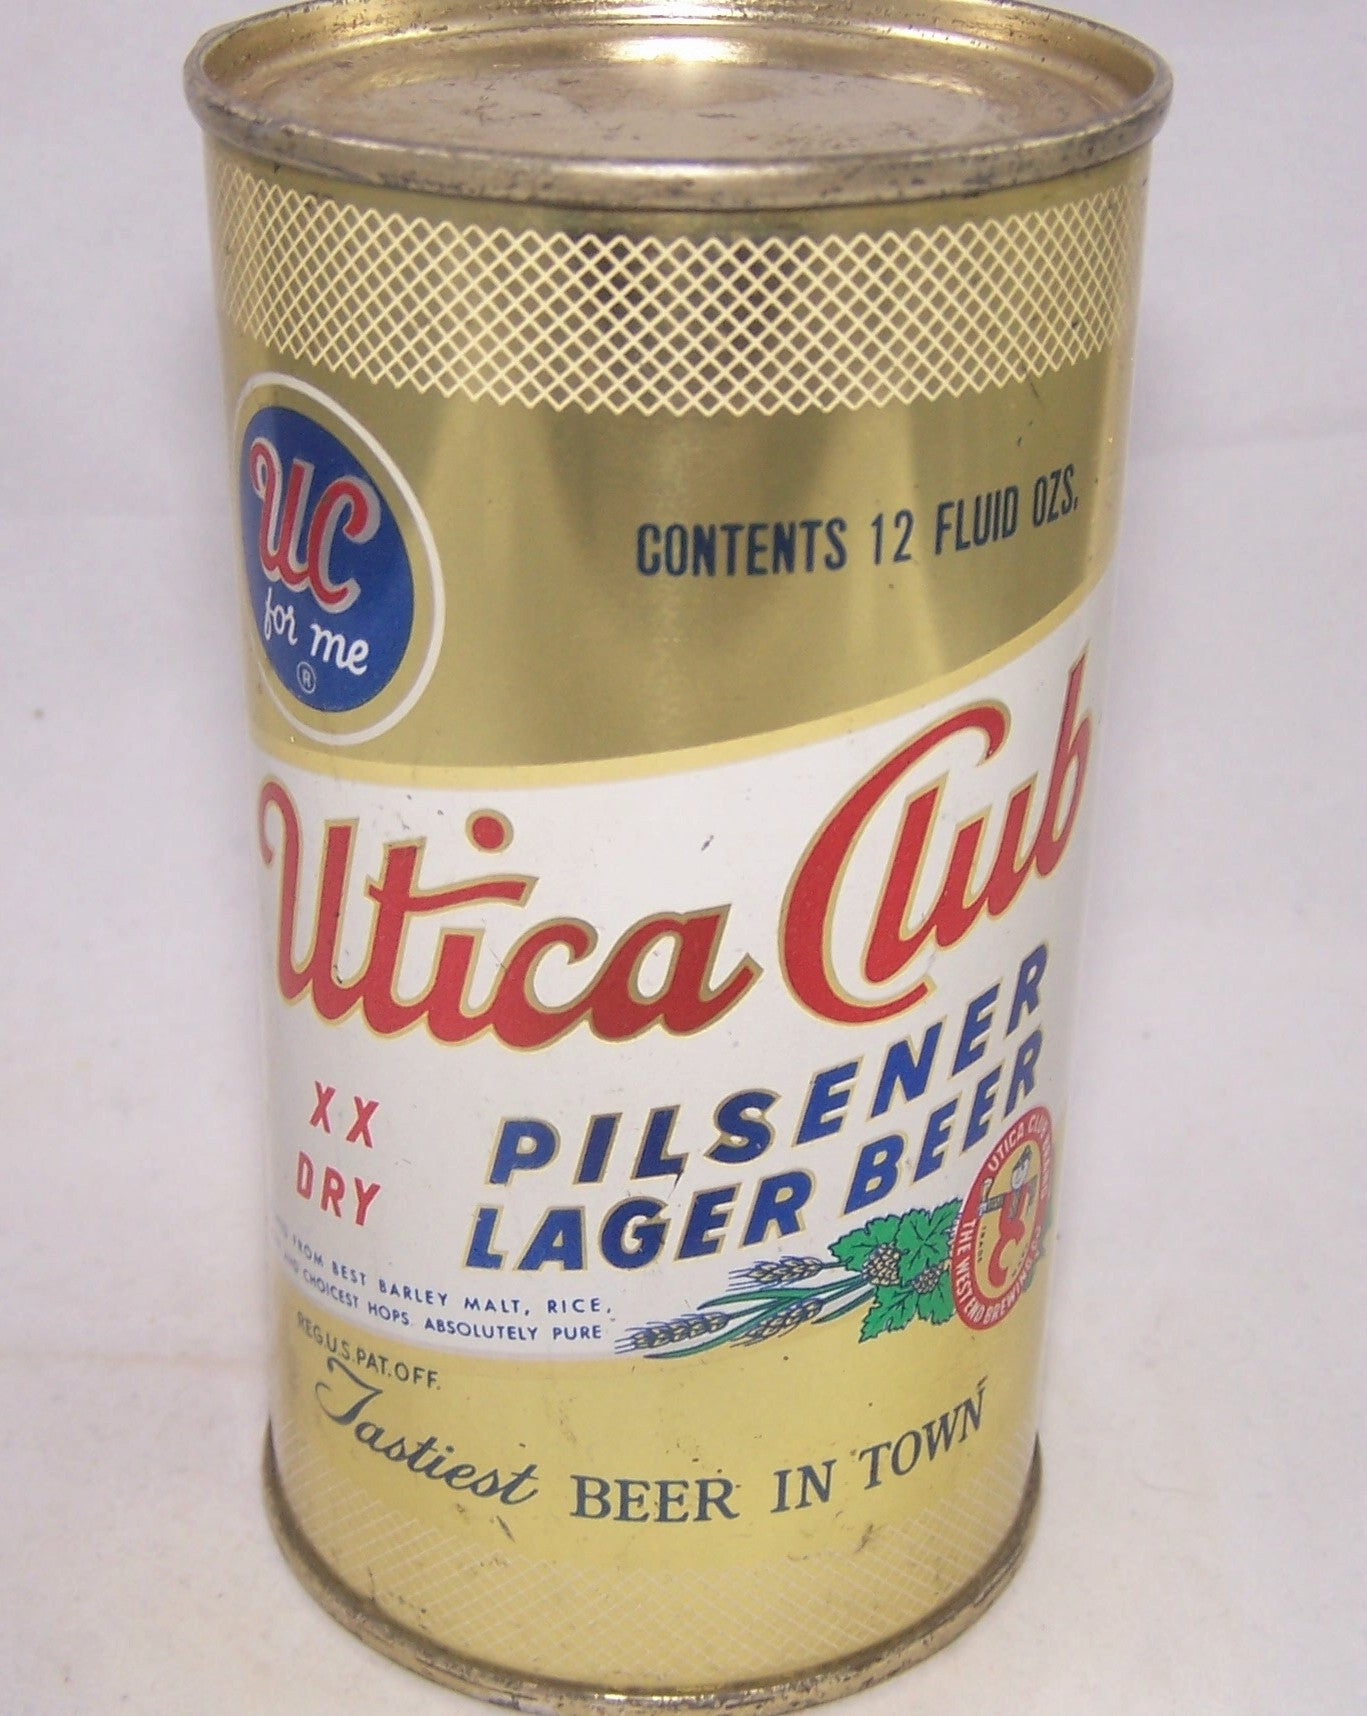 Utica Club Pilsener Lager Beer, USBC 142-24, Grade 1/1+ Sold on 06/15/17